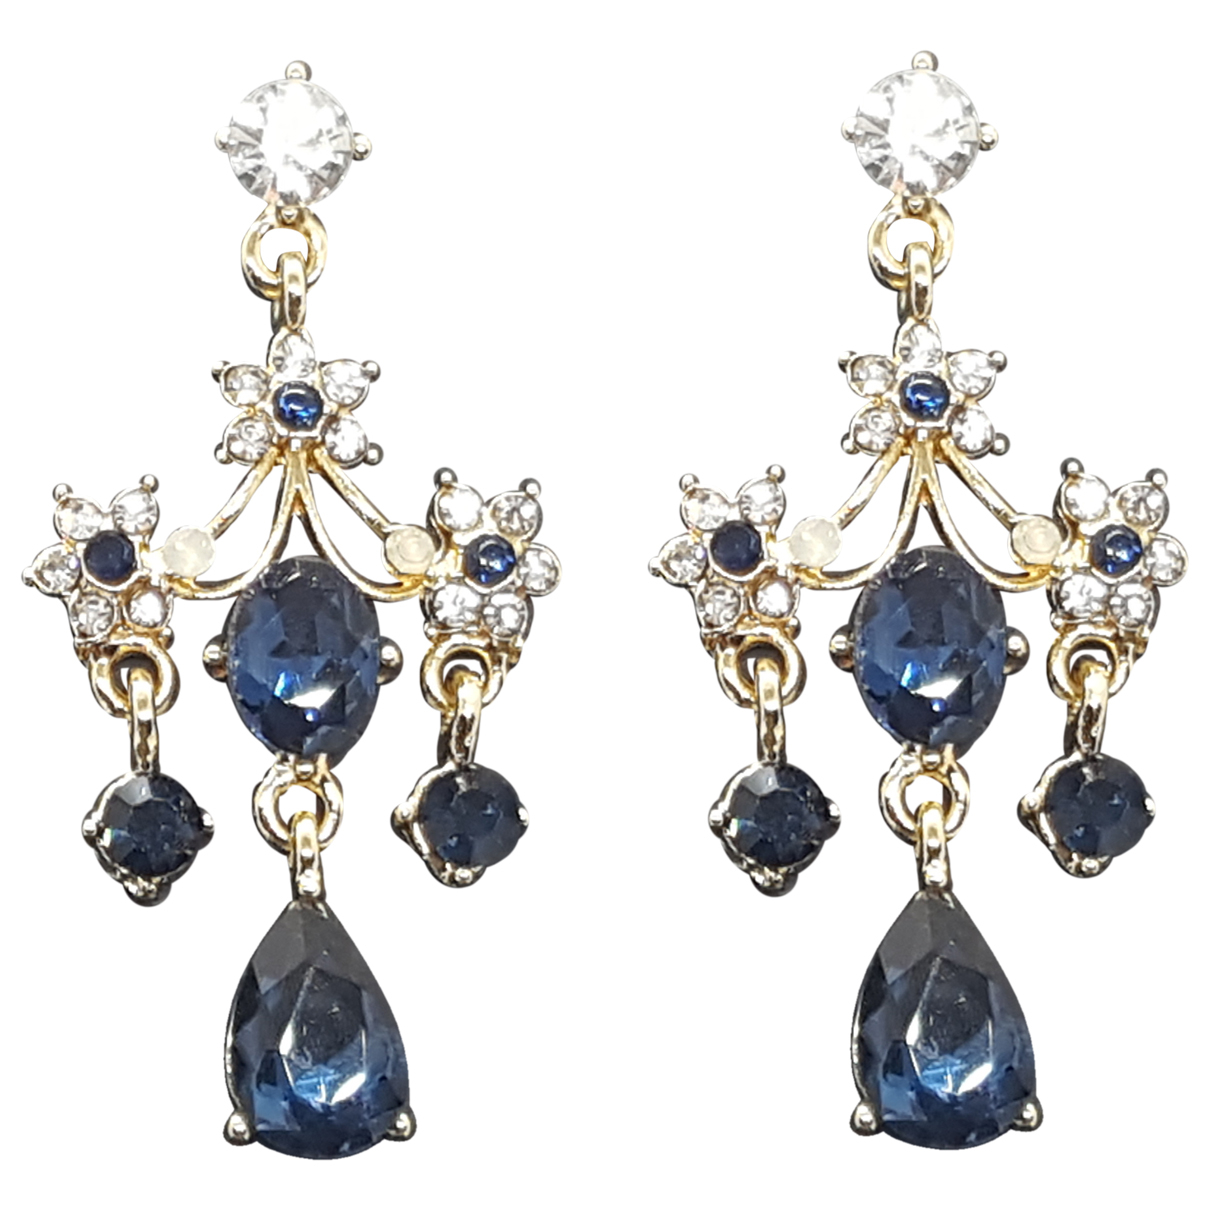 Non Signé / Unsigned Art Déco Gold Metal Earrings for Women N